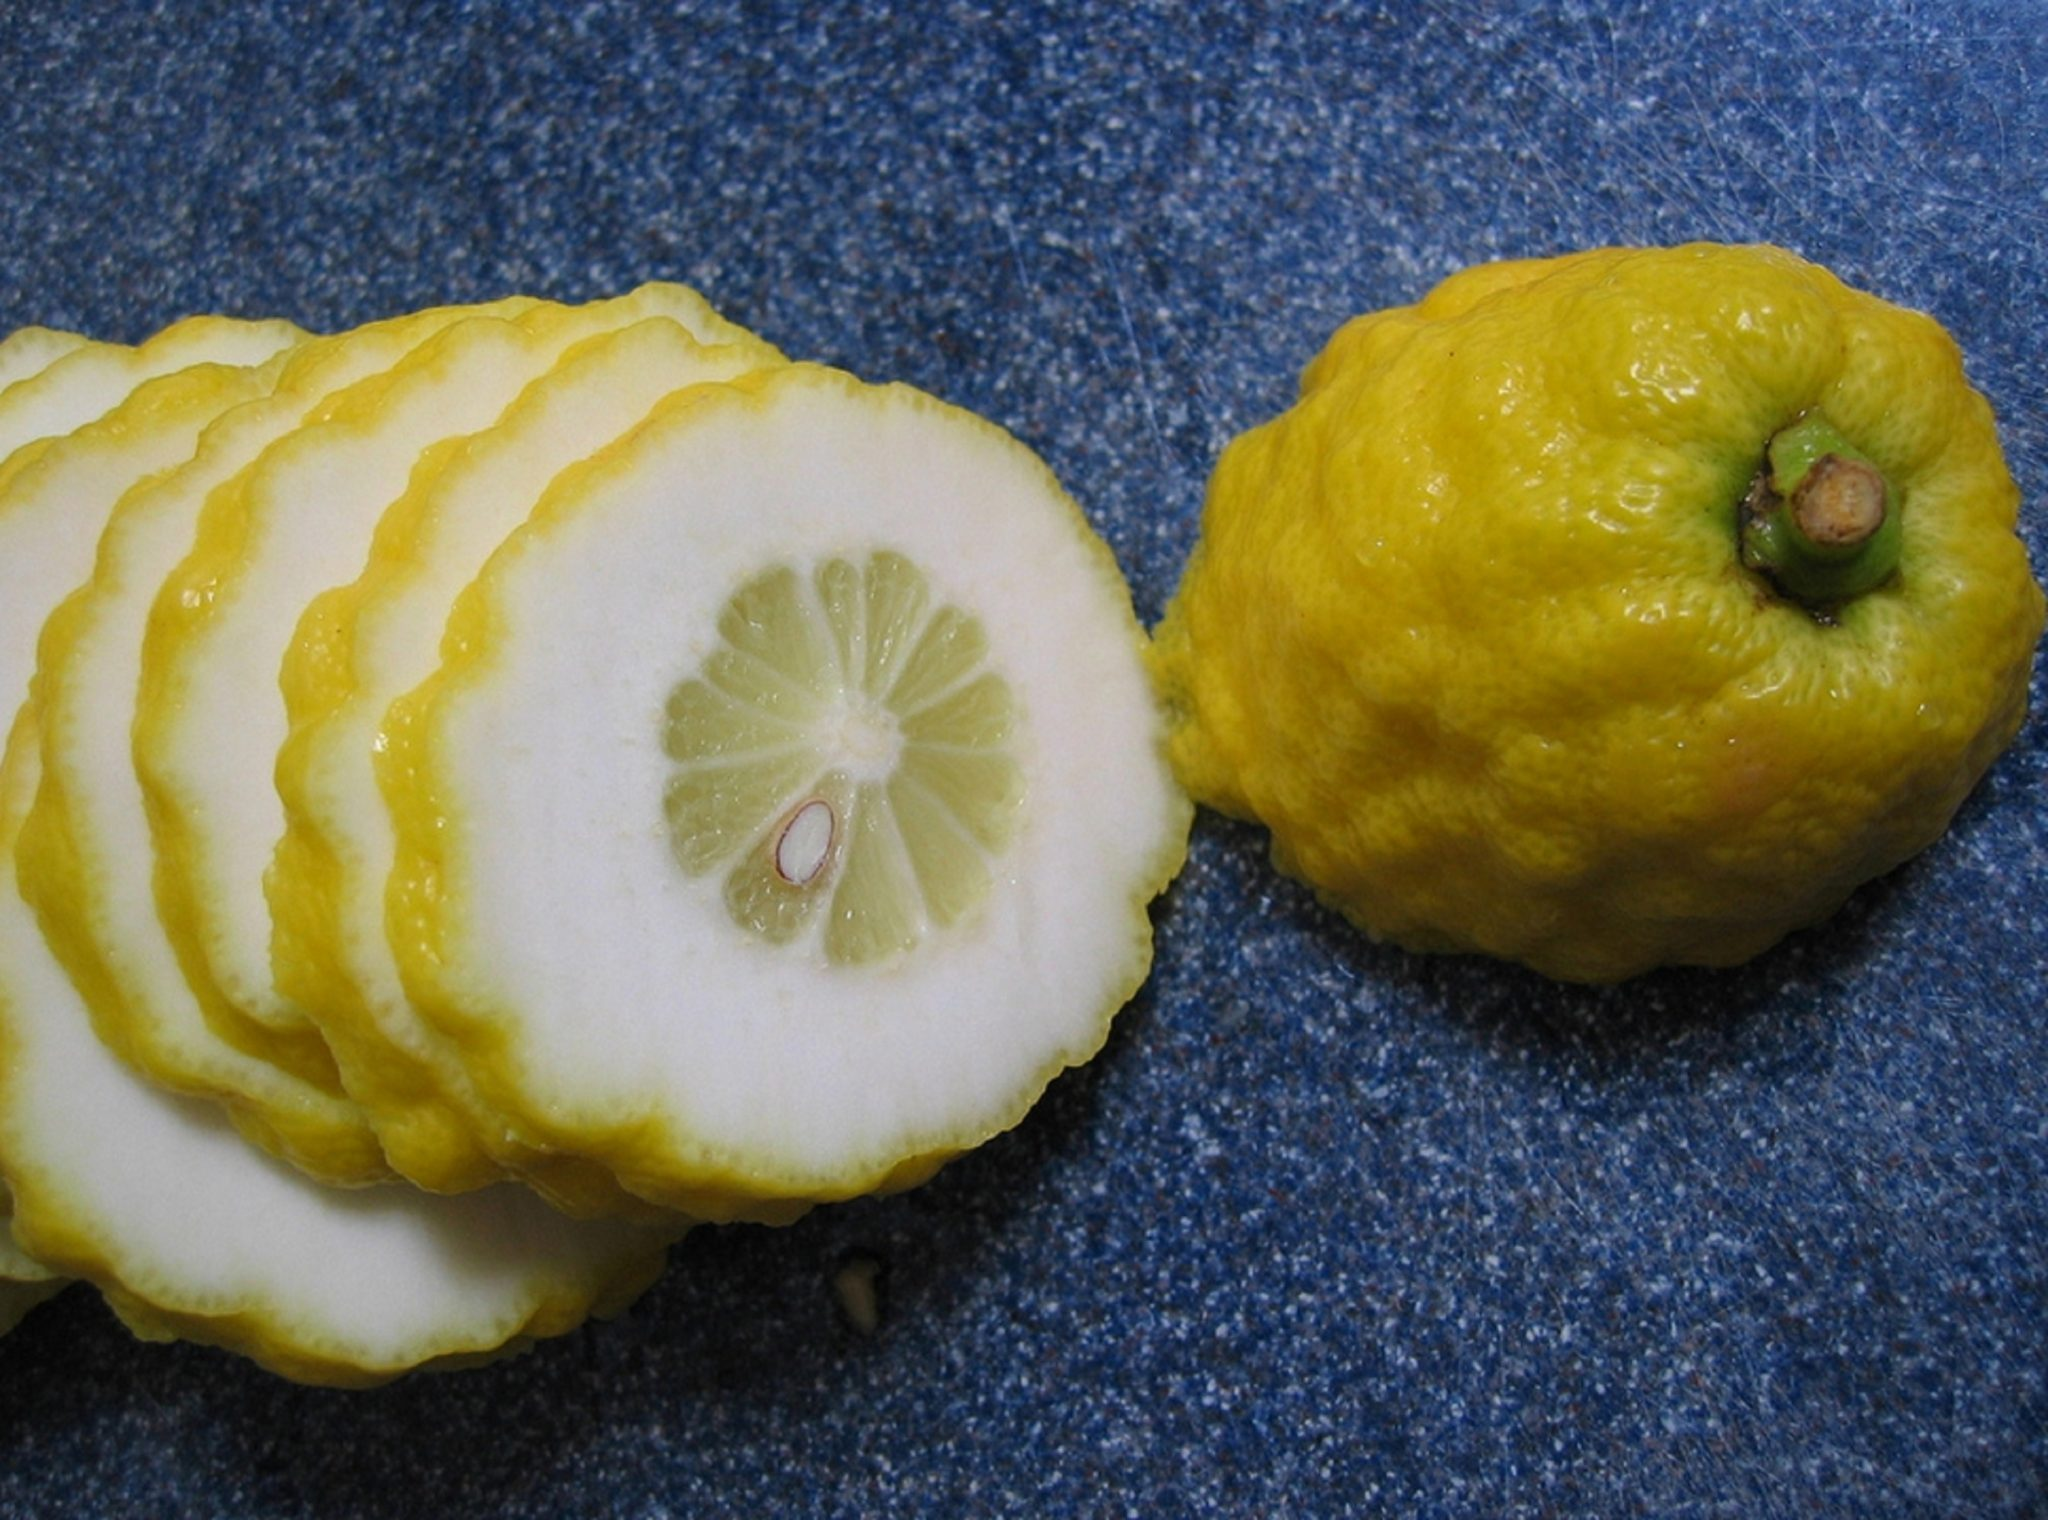 Sliced Citron showing the thick pith